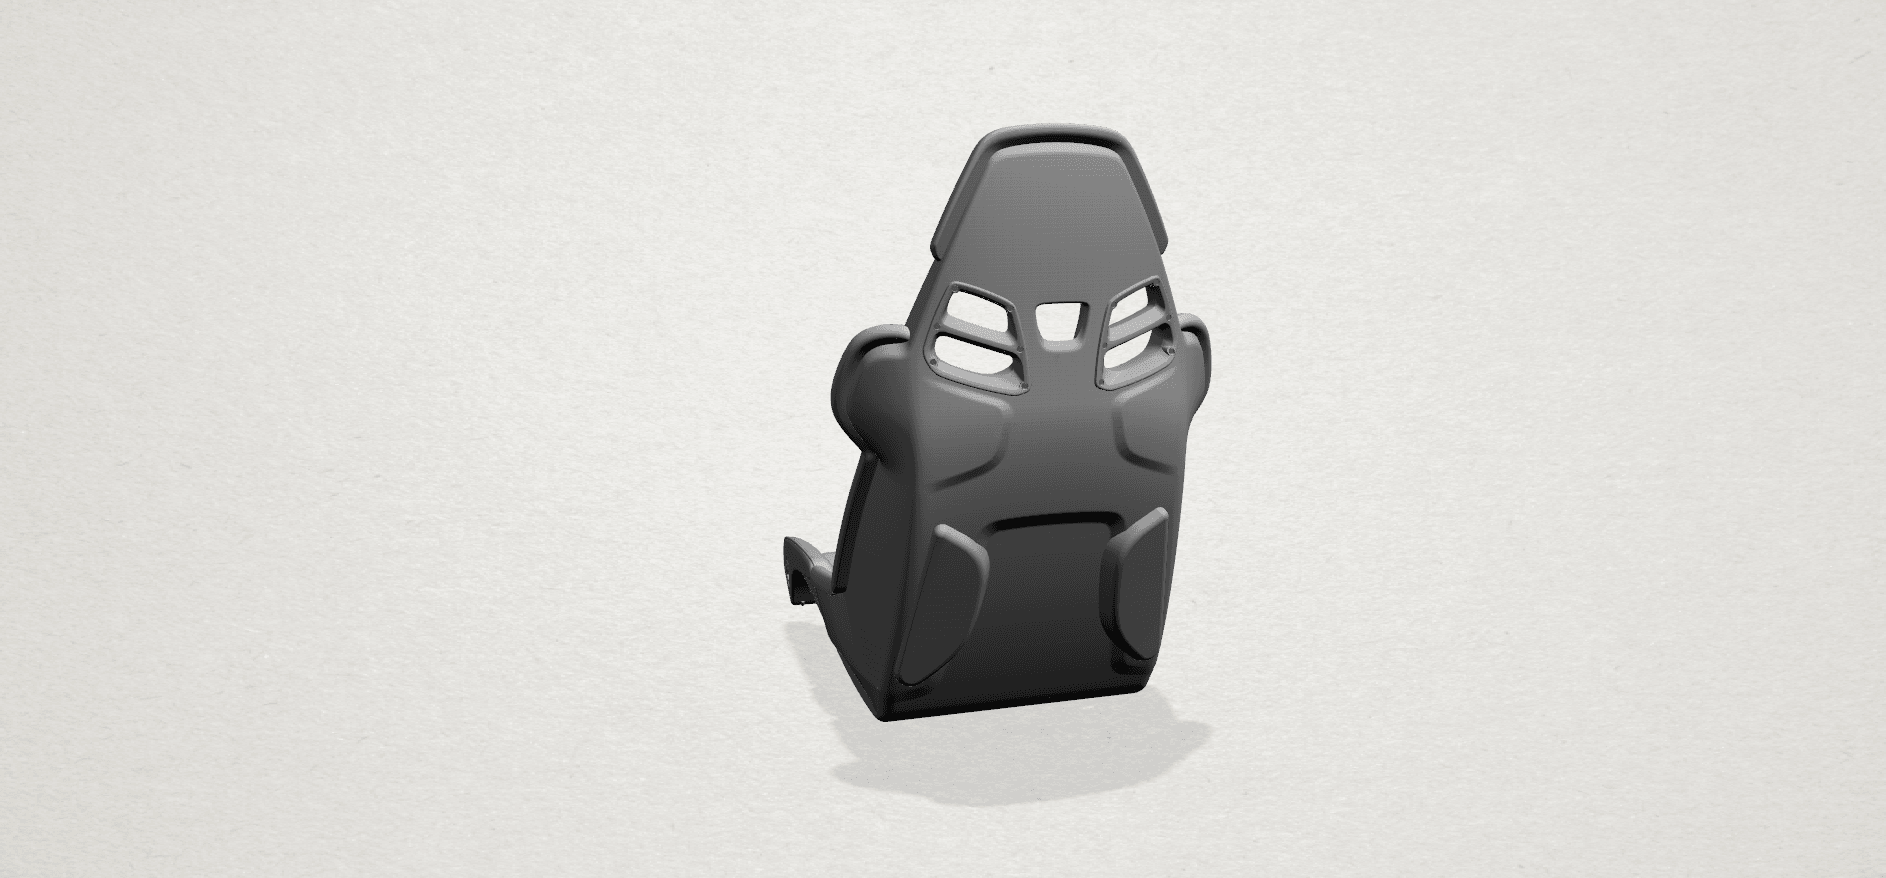 Seat -A03.png Download free STL file Car Seat • 3D printing design, GeorgesNikkei